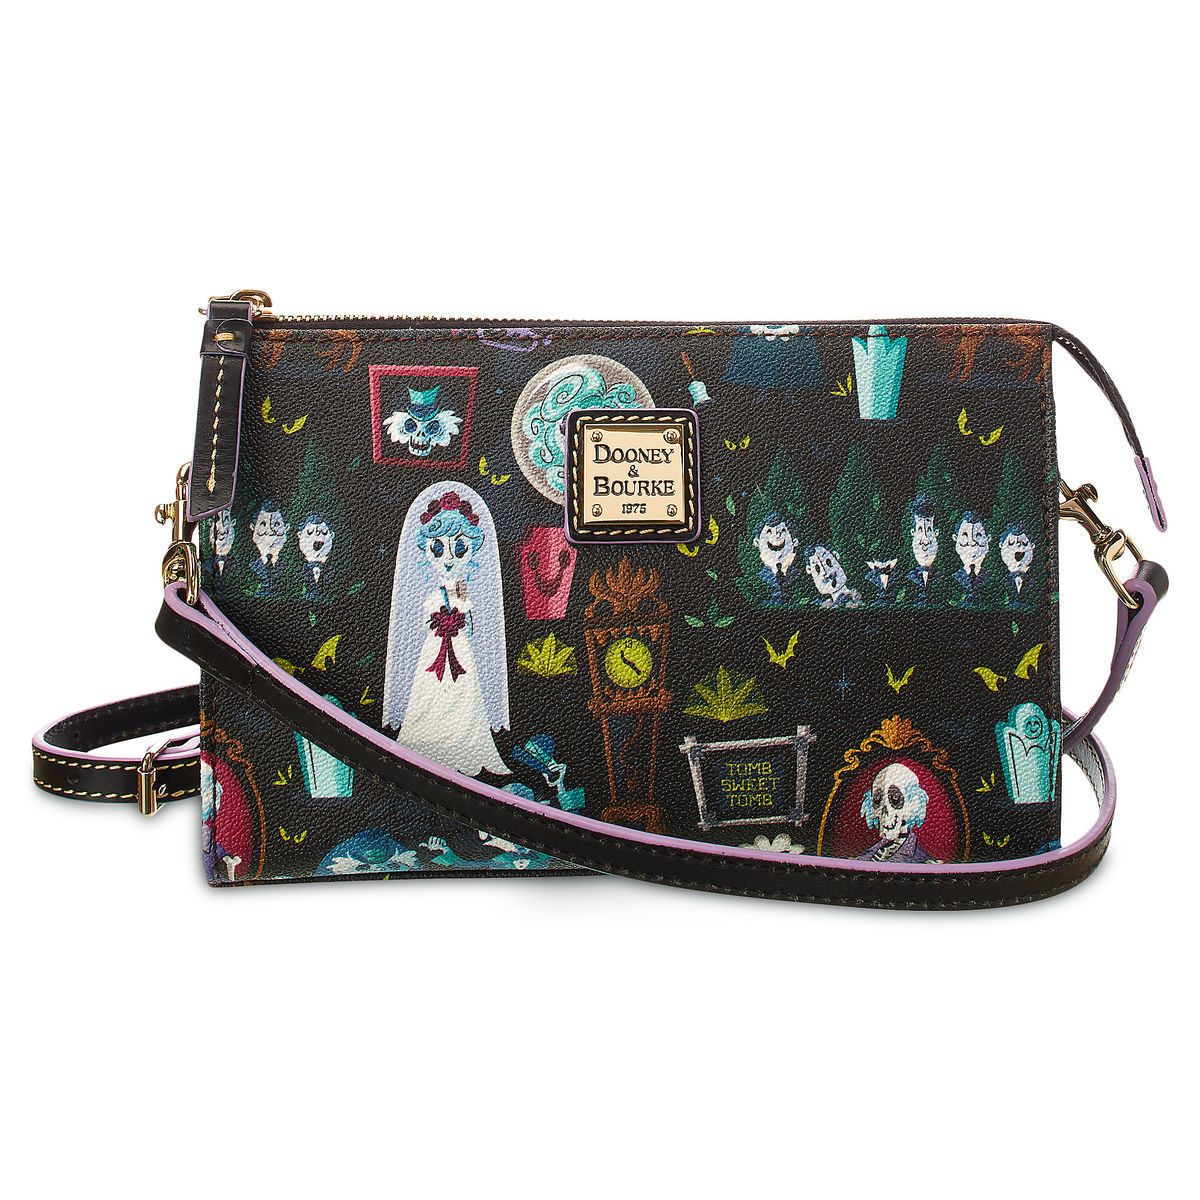 New Haunted Mansion Dooney And Bourke Collection Is Full Of Character Dooney And Bourke Disney Disney Dooney Dooney Bourke